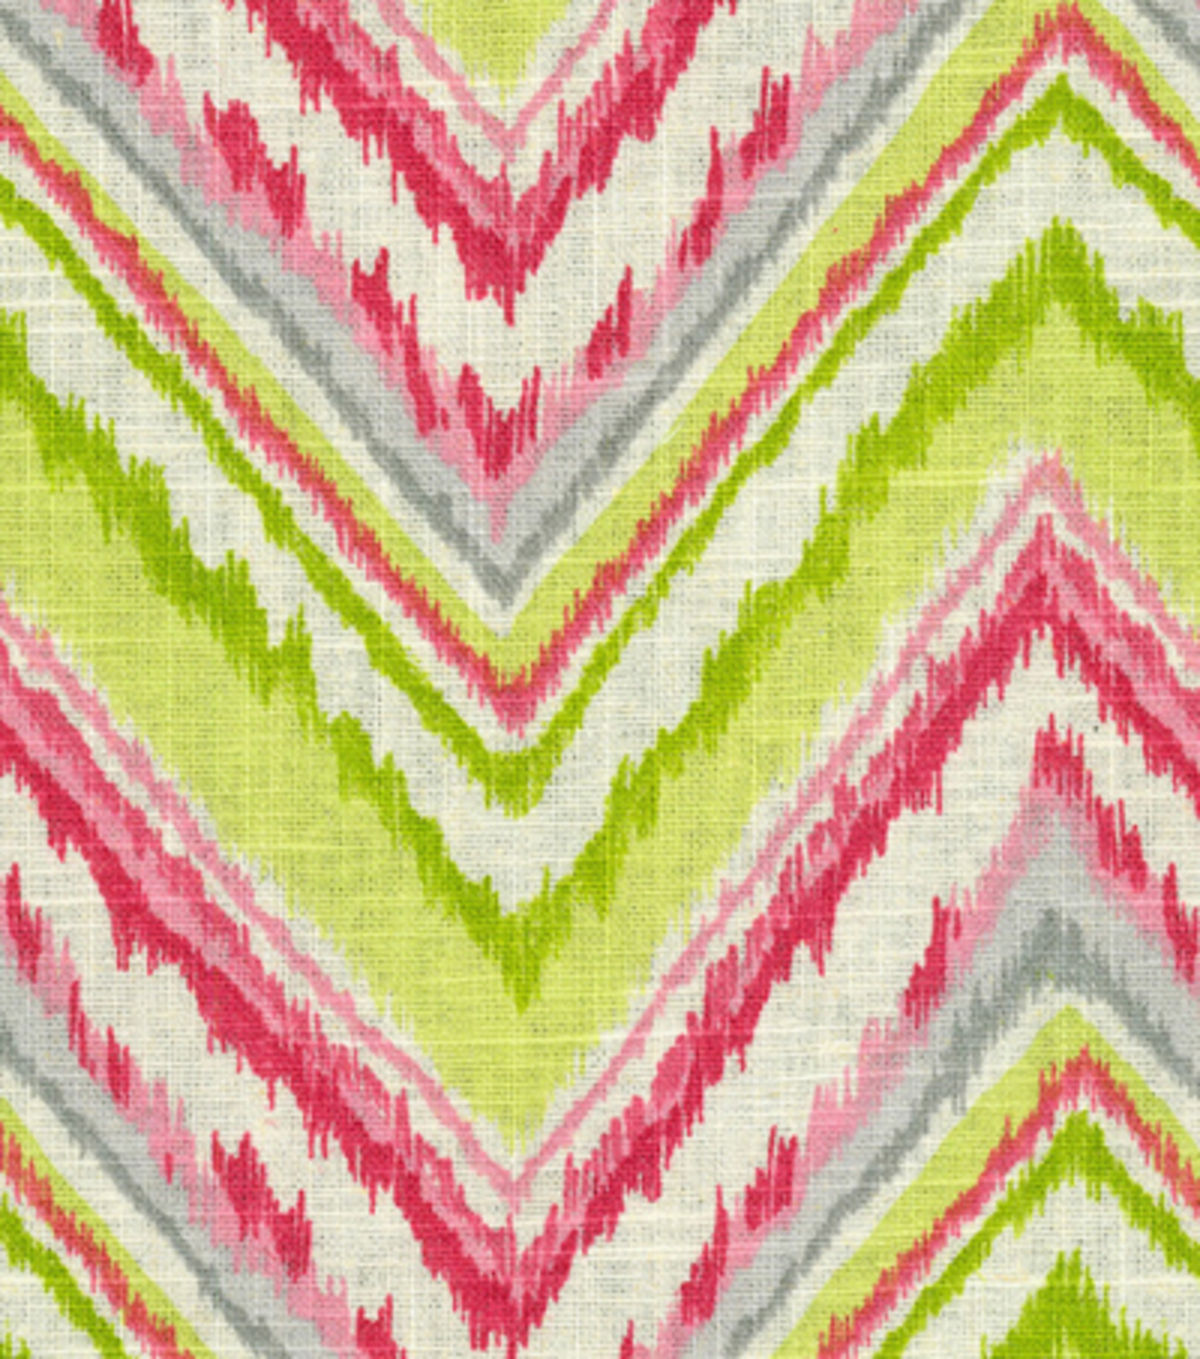 Home Decor 8\u0022x8\u0022 Fabric Swatch-Dena Chevron Charade Petal